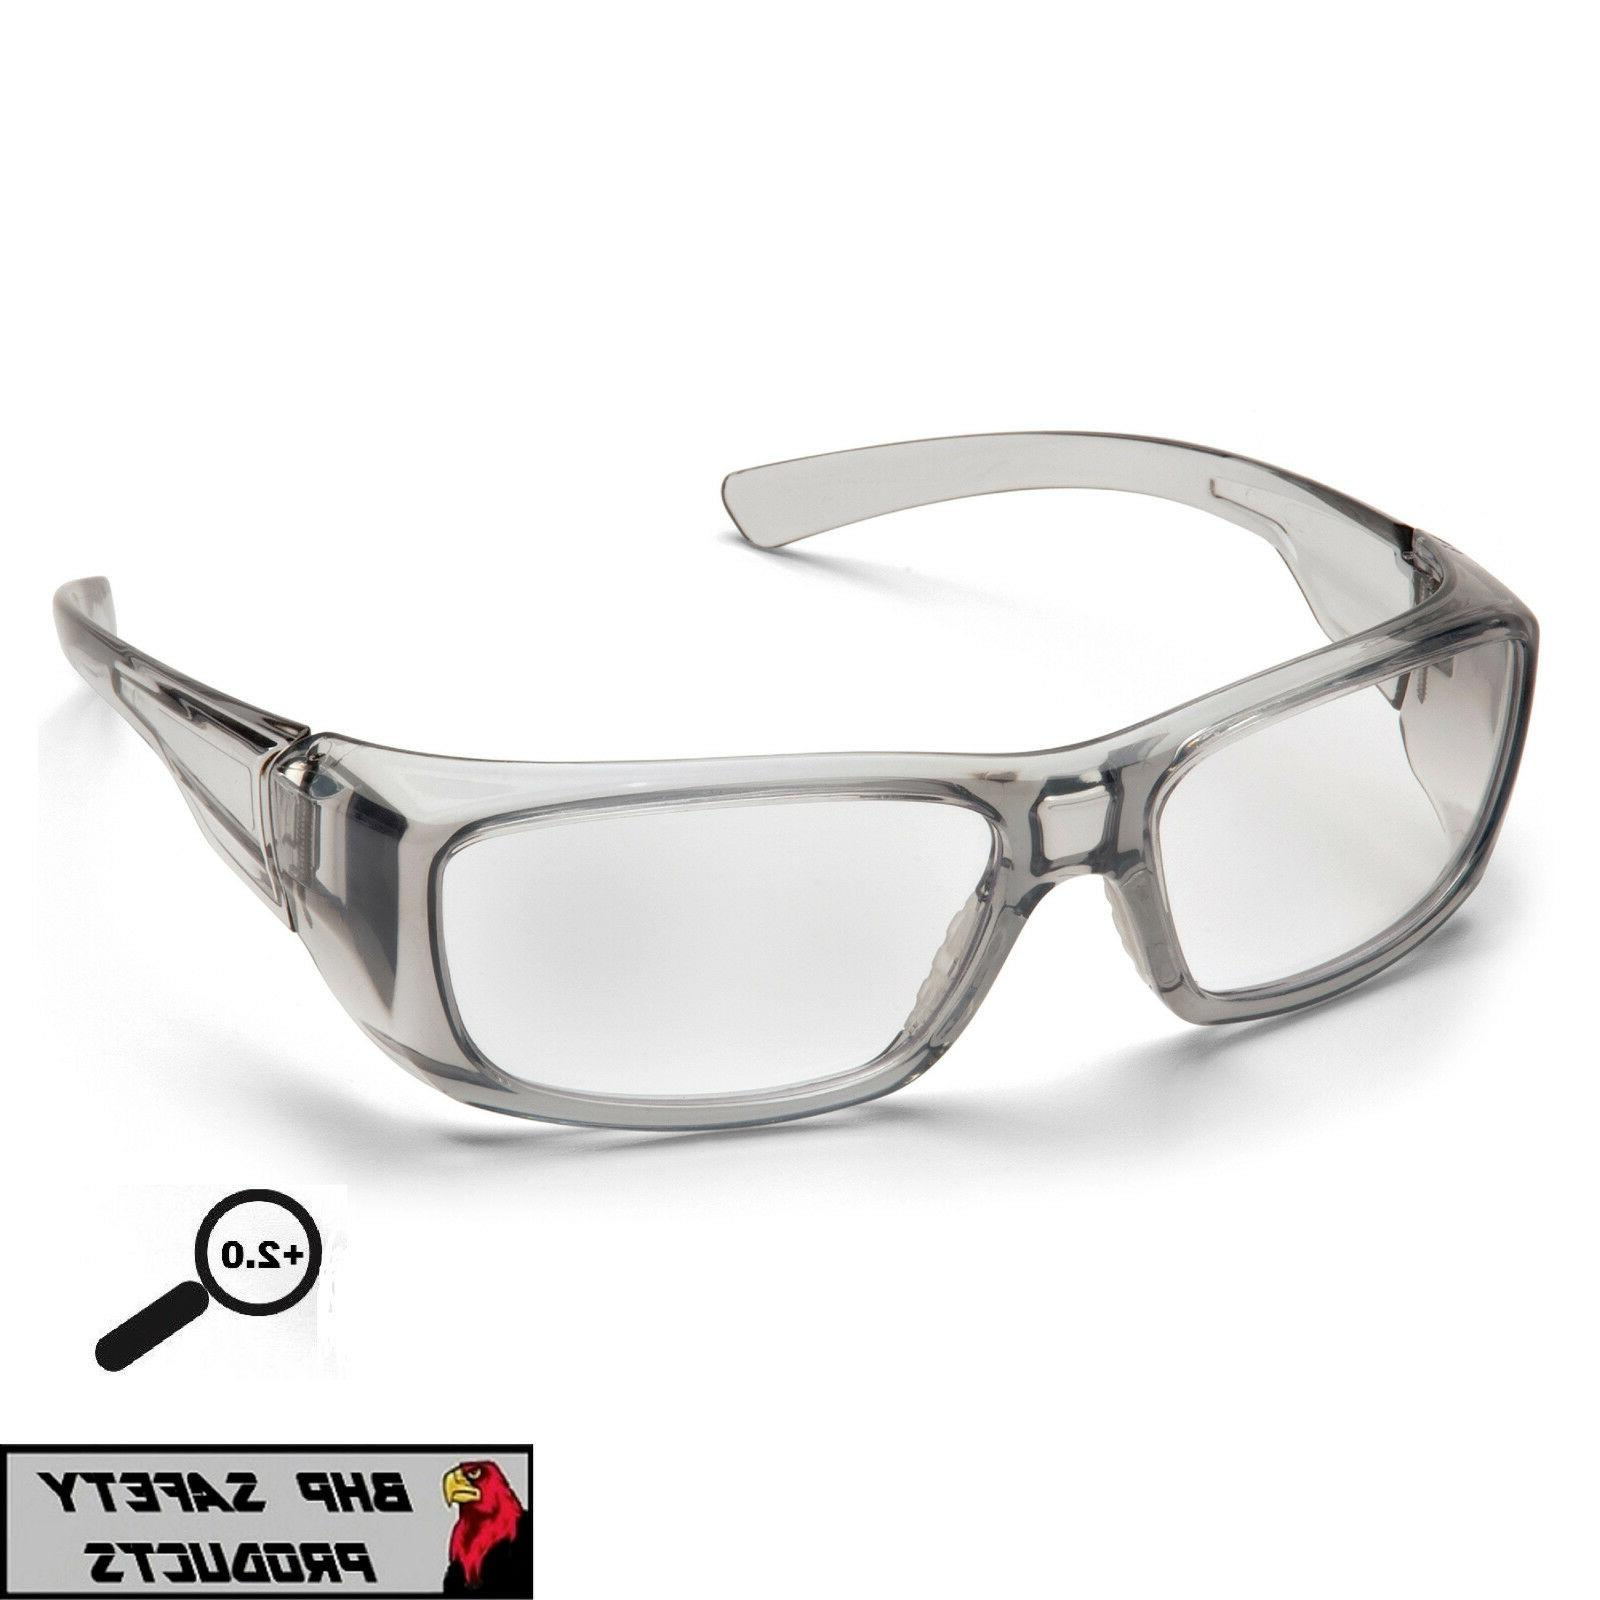 Pyramex Safety Glasses, Gray Frame, Cler +2.0 Lens, SG7910D2